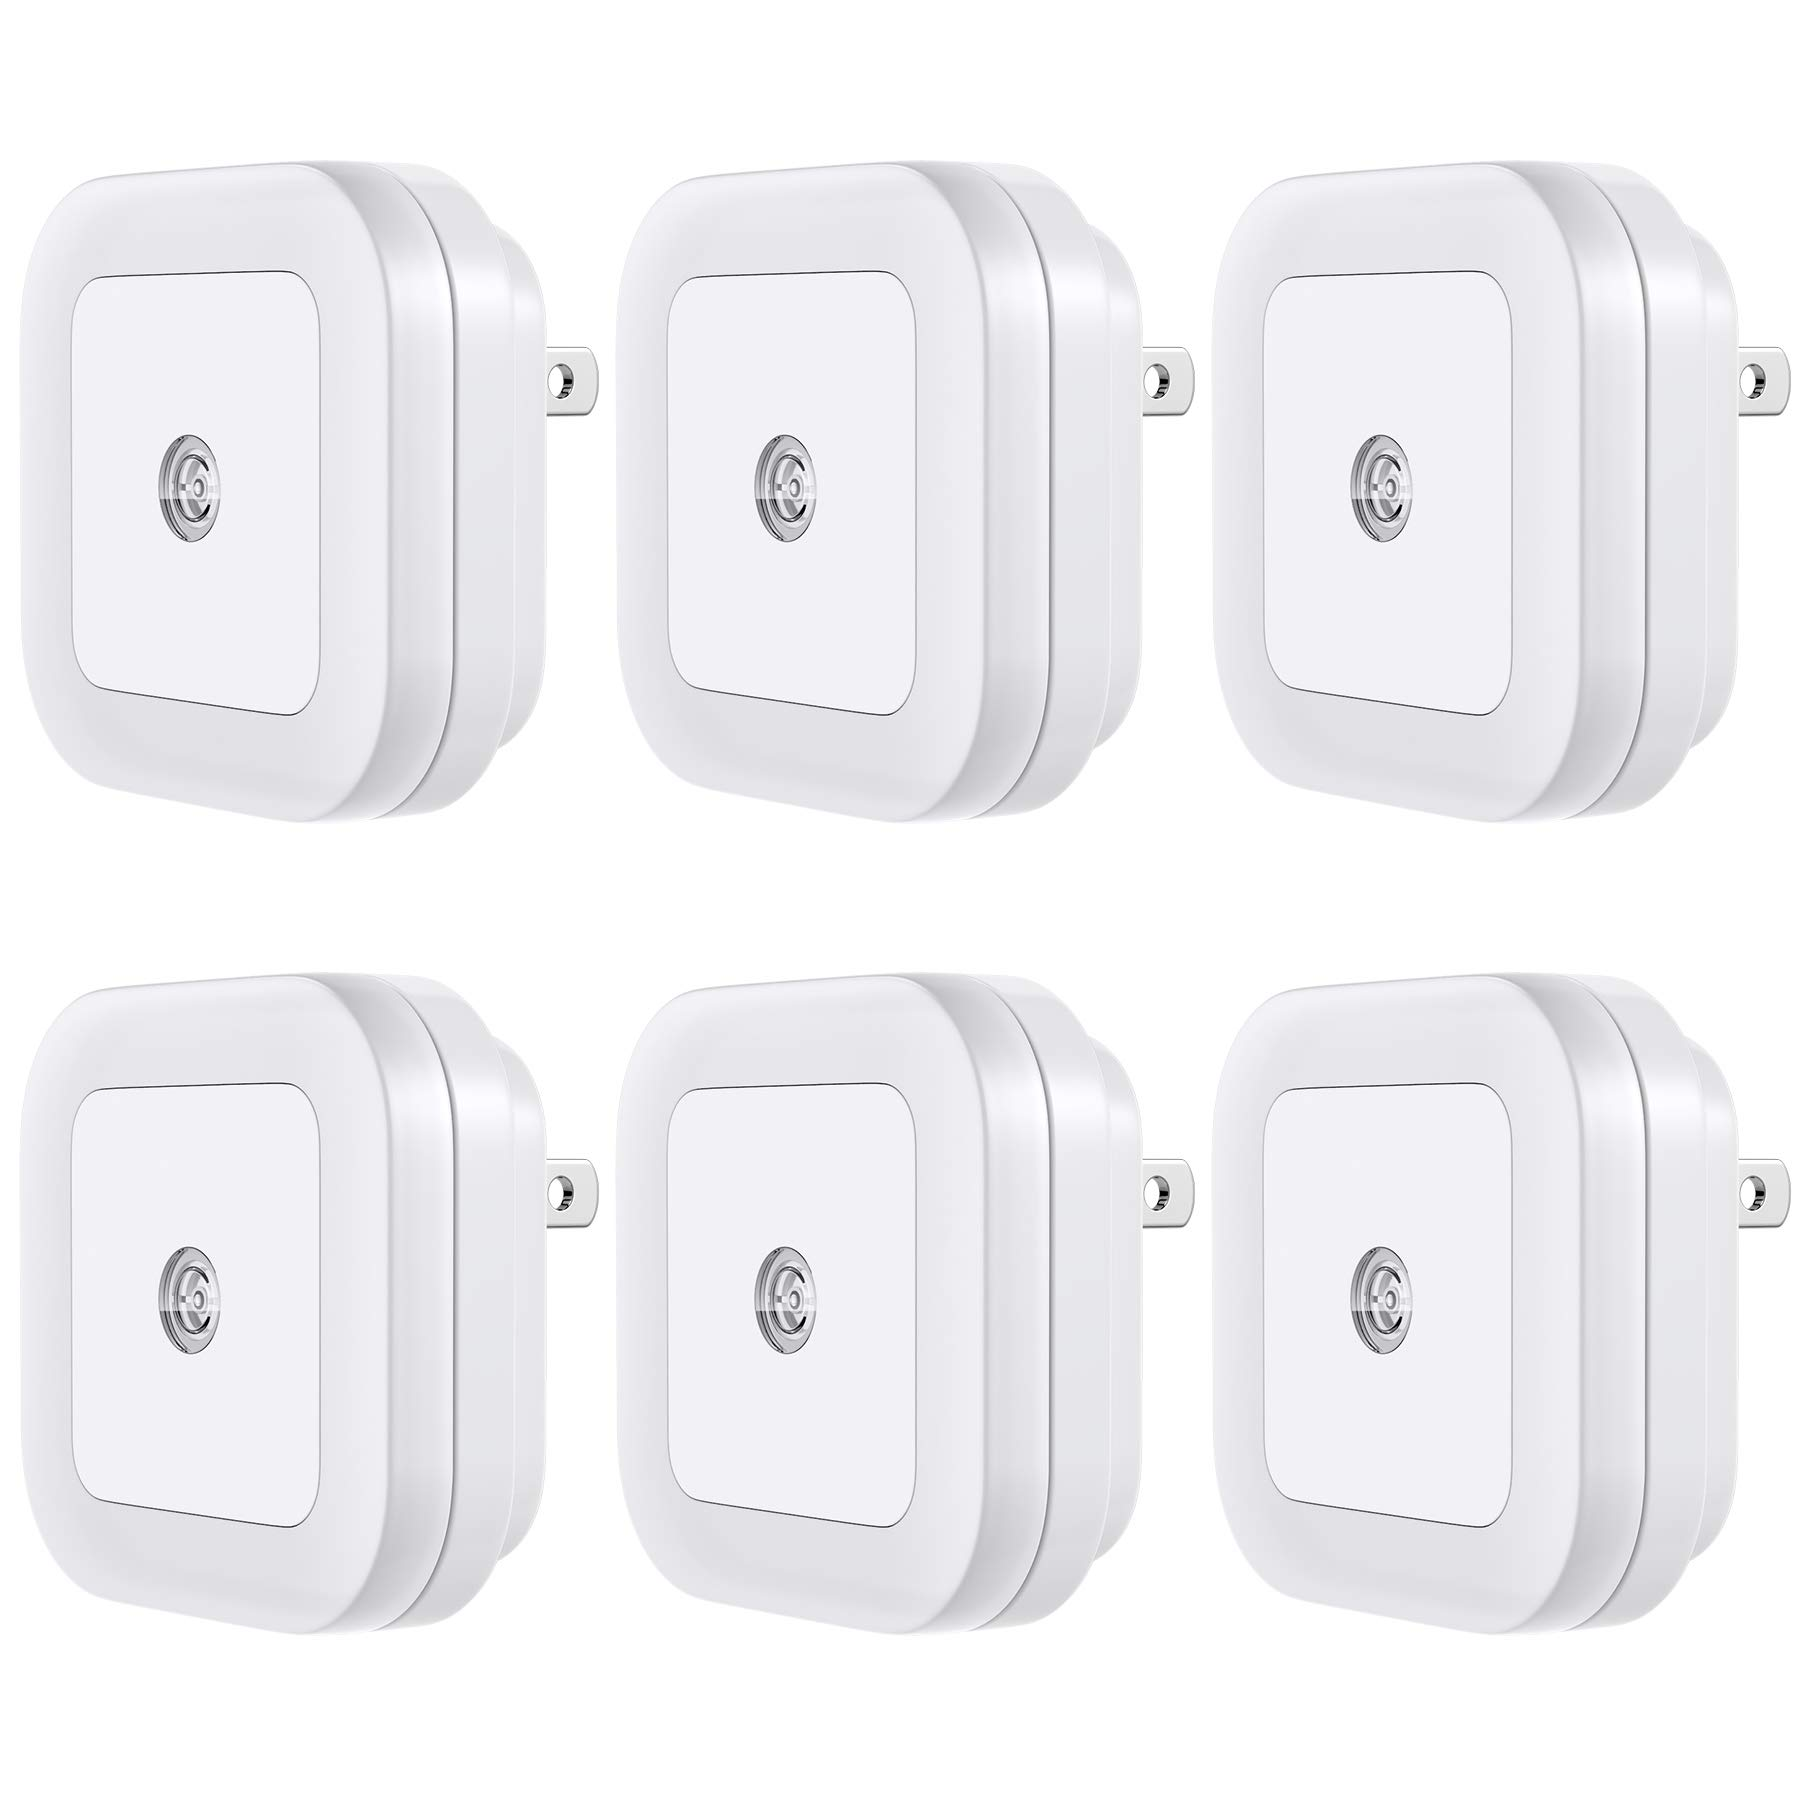 Vont LED Night Light (Plug-in), Smart Dusk to Dawn Sensor, Automatic Night Lights, Suitable for Bedroom, Bathroom, Toilet,Stairs,Kitchen,Hallway,Kids,Adults,Compact Nightlight, Energy, Cool White (6) by Vont